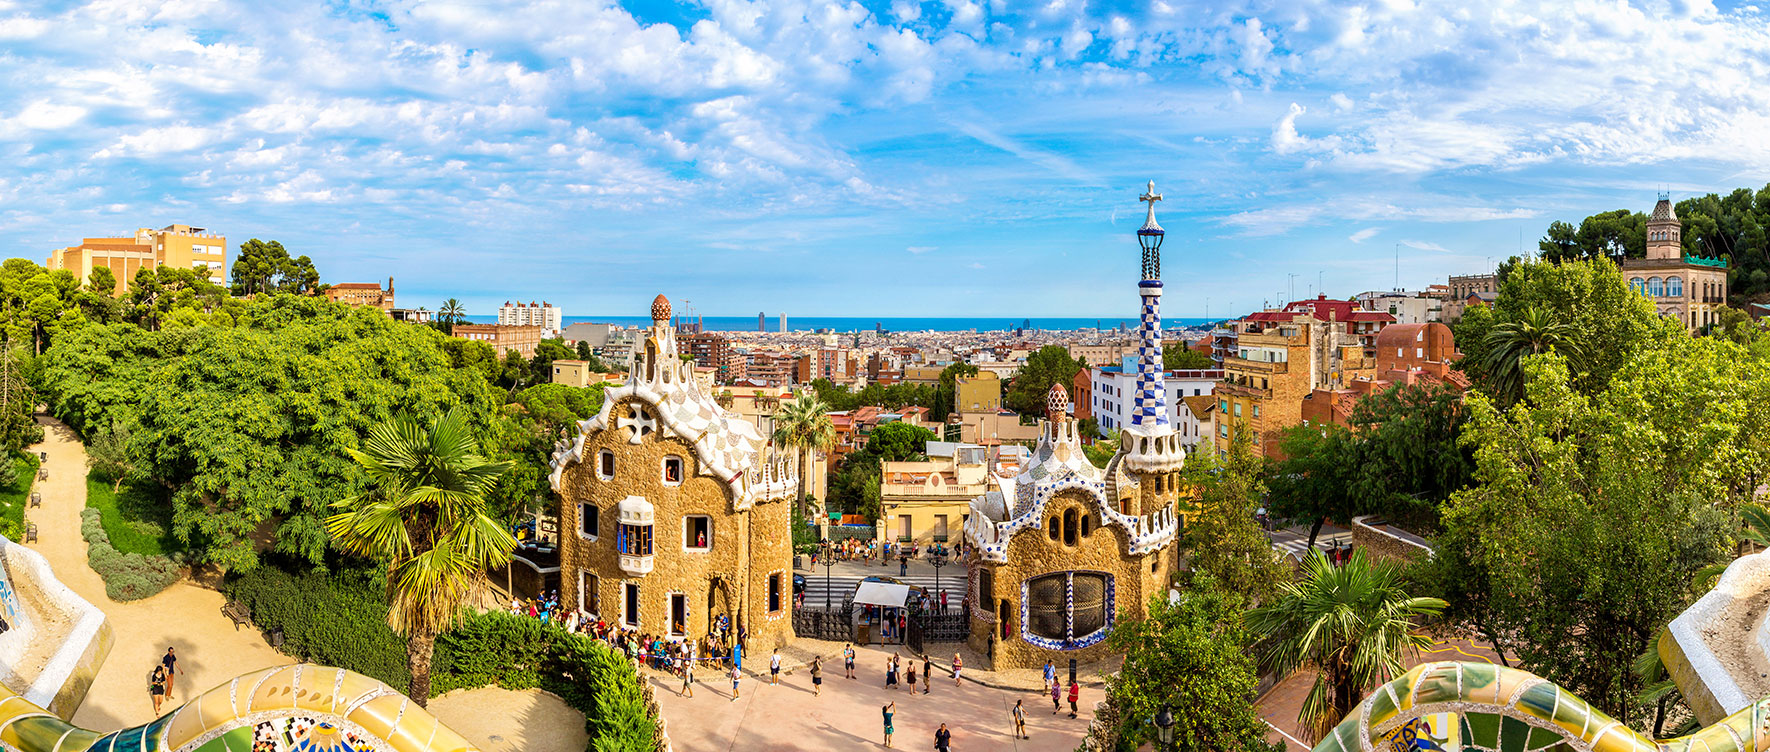 Park Guell in Barcelona best holiday destinations for November